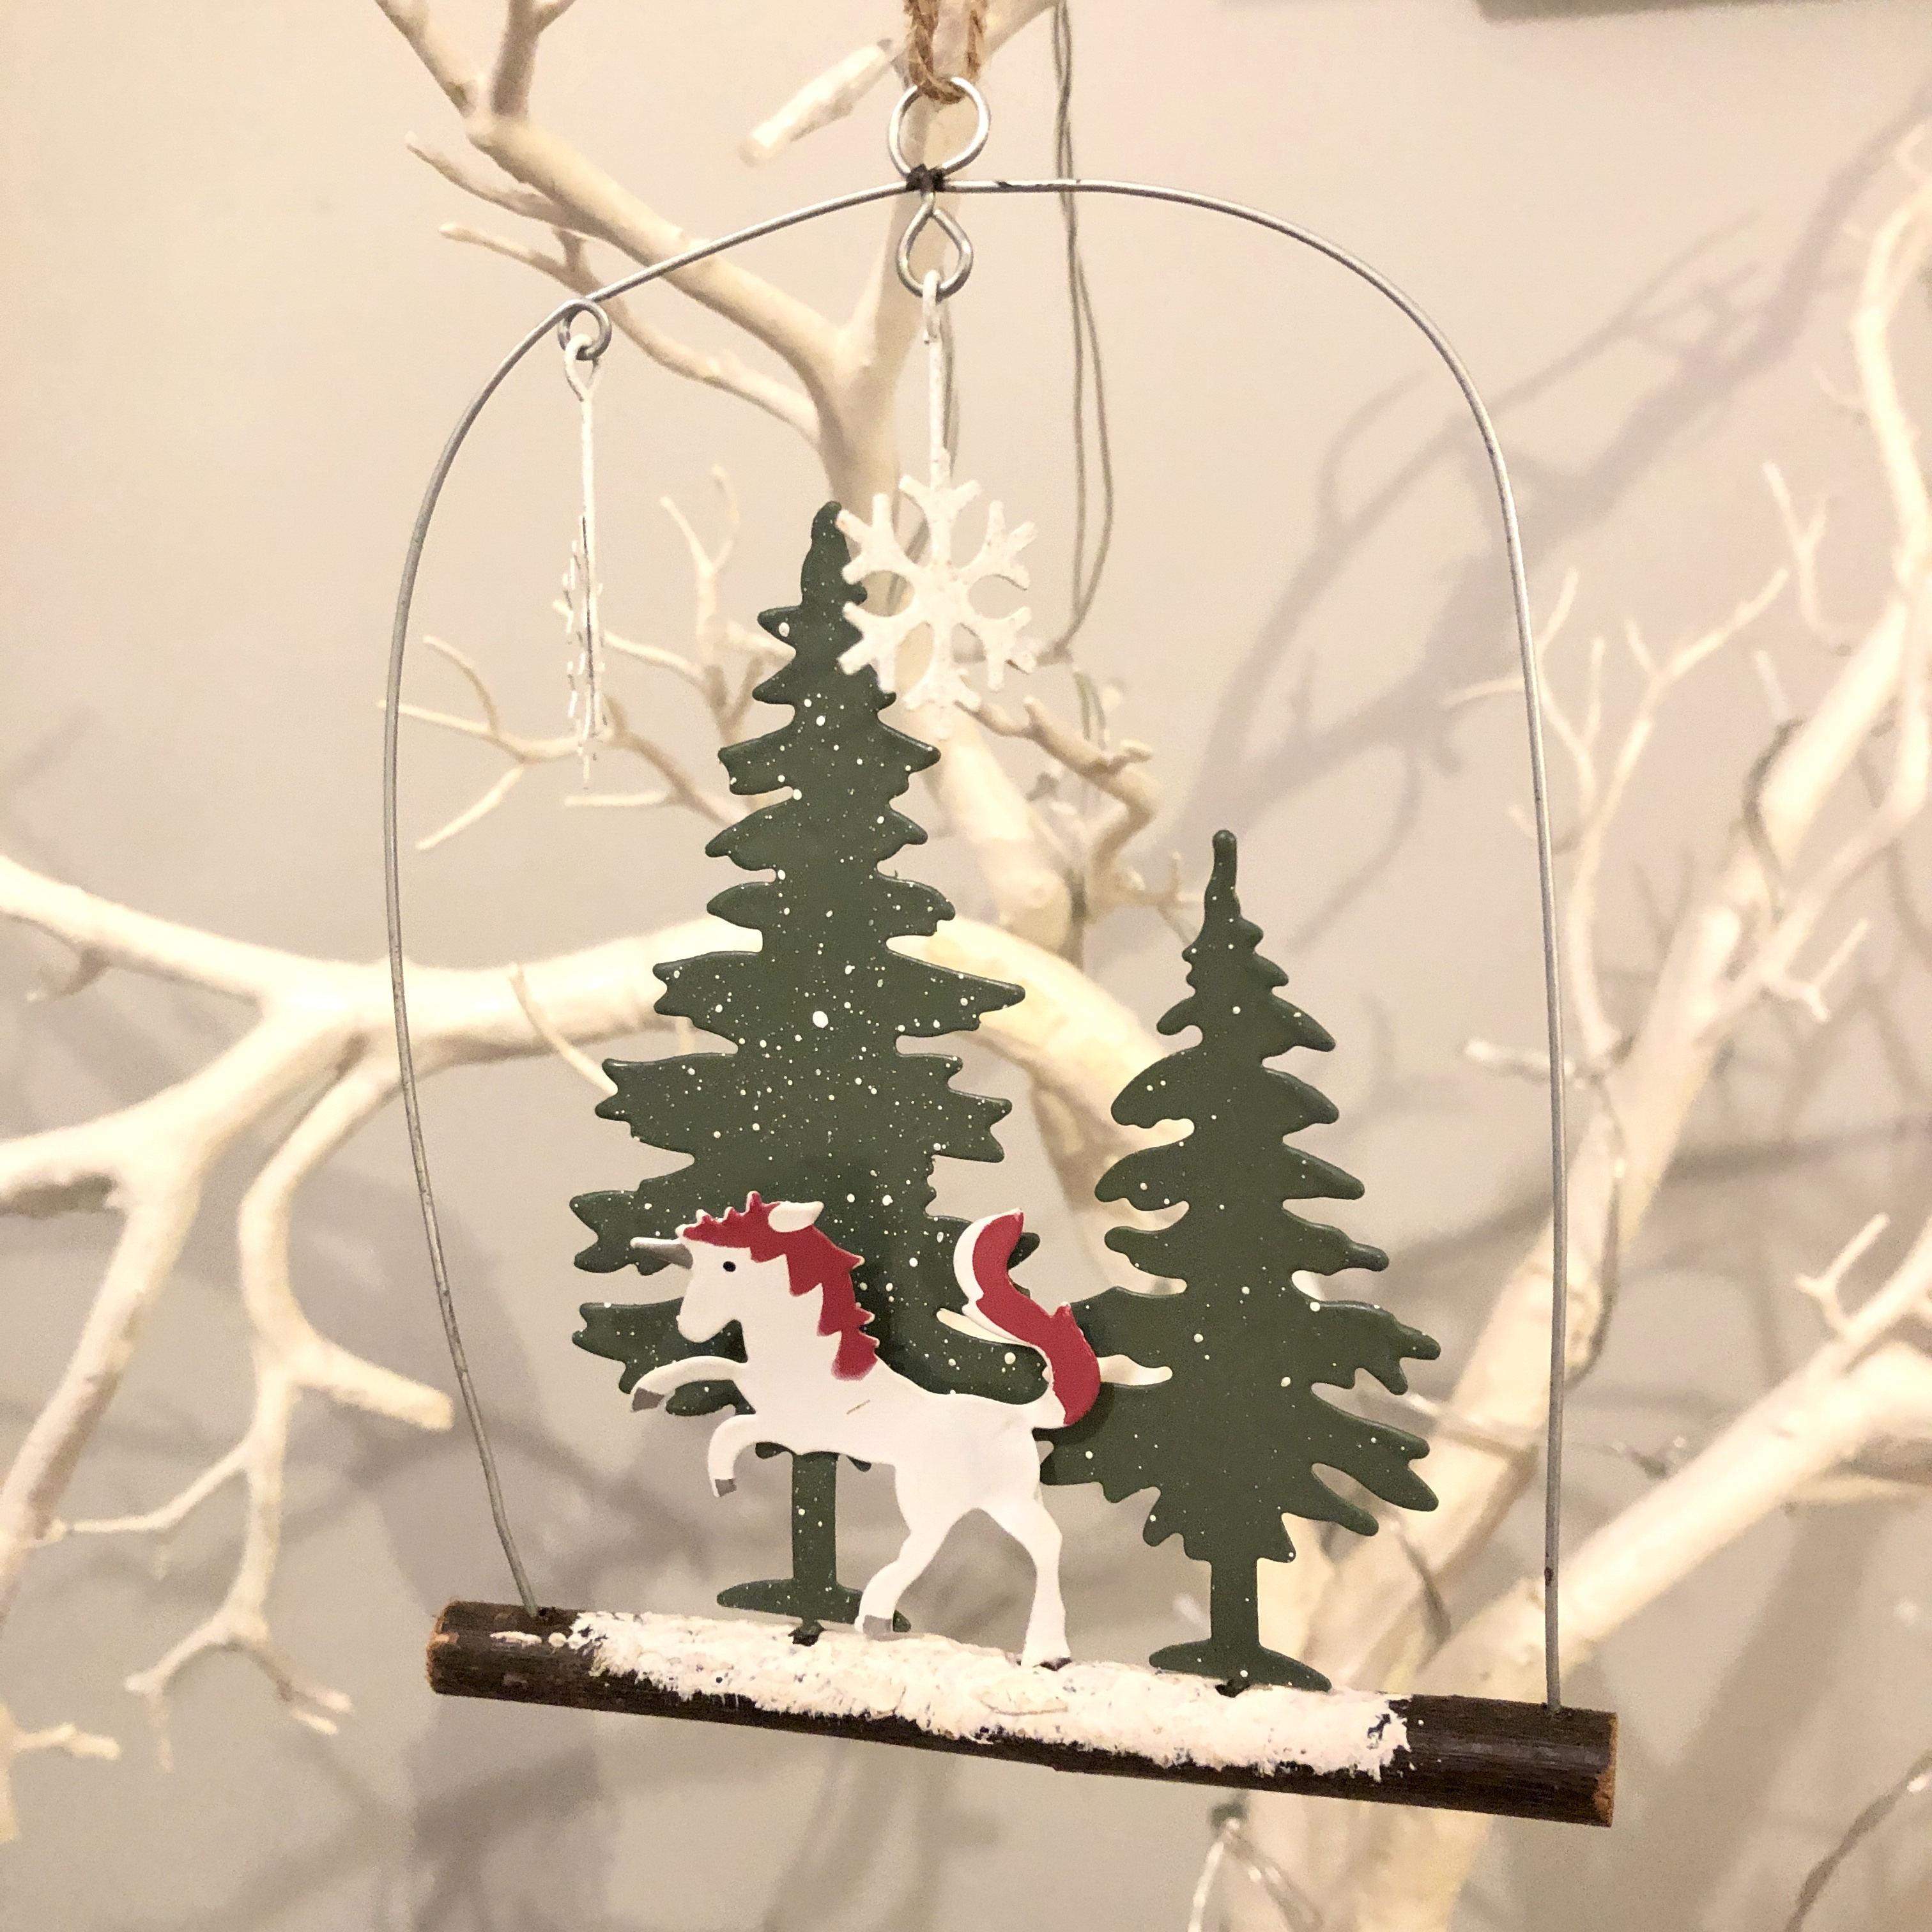 Unicorn in the trees hanging Christmas decoration by shoeless joe